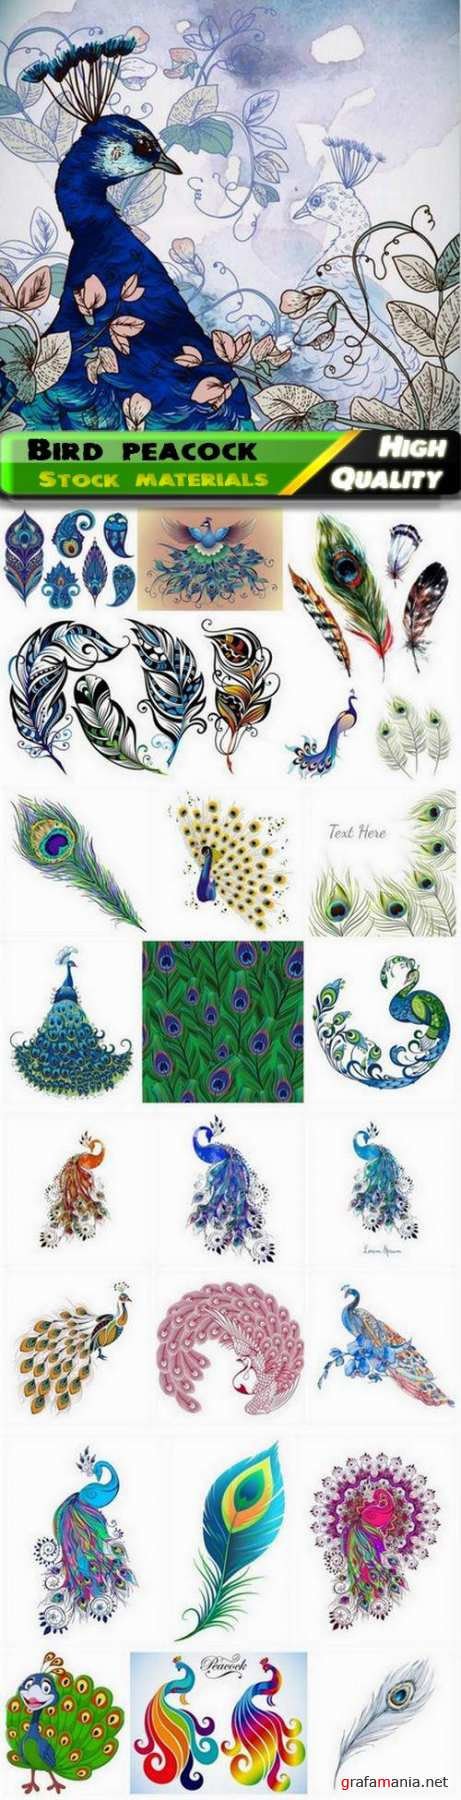 Bird peacock illustration with abstract colorful feathers - 25 Eps